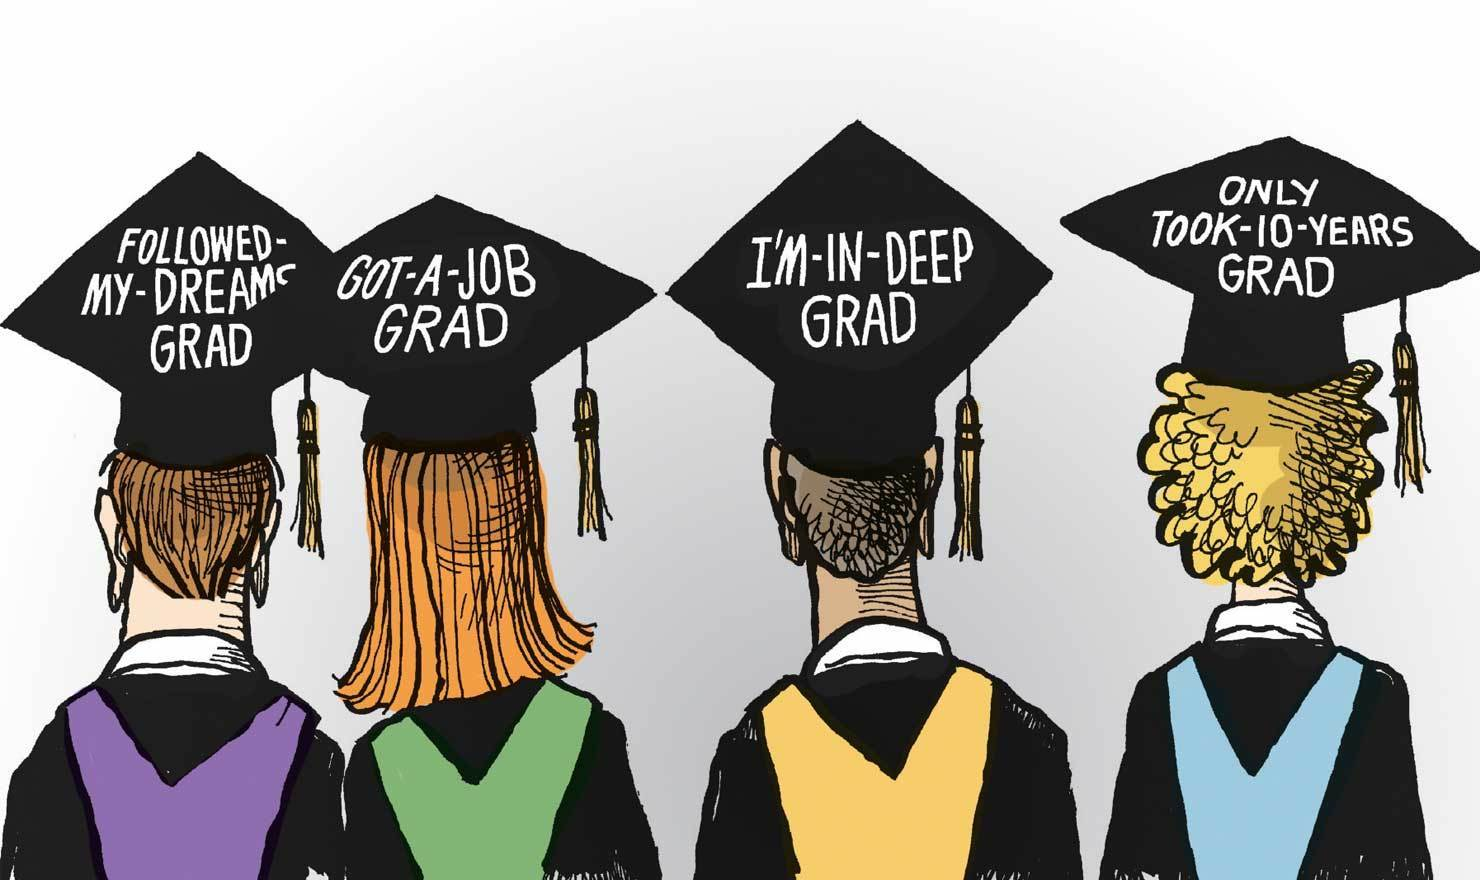 Get Ready For Adulthood With These Hilarious Graduation Comics